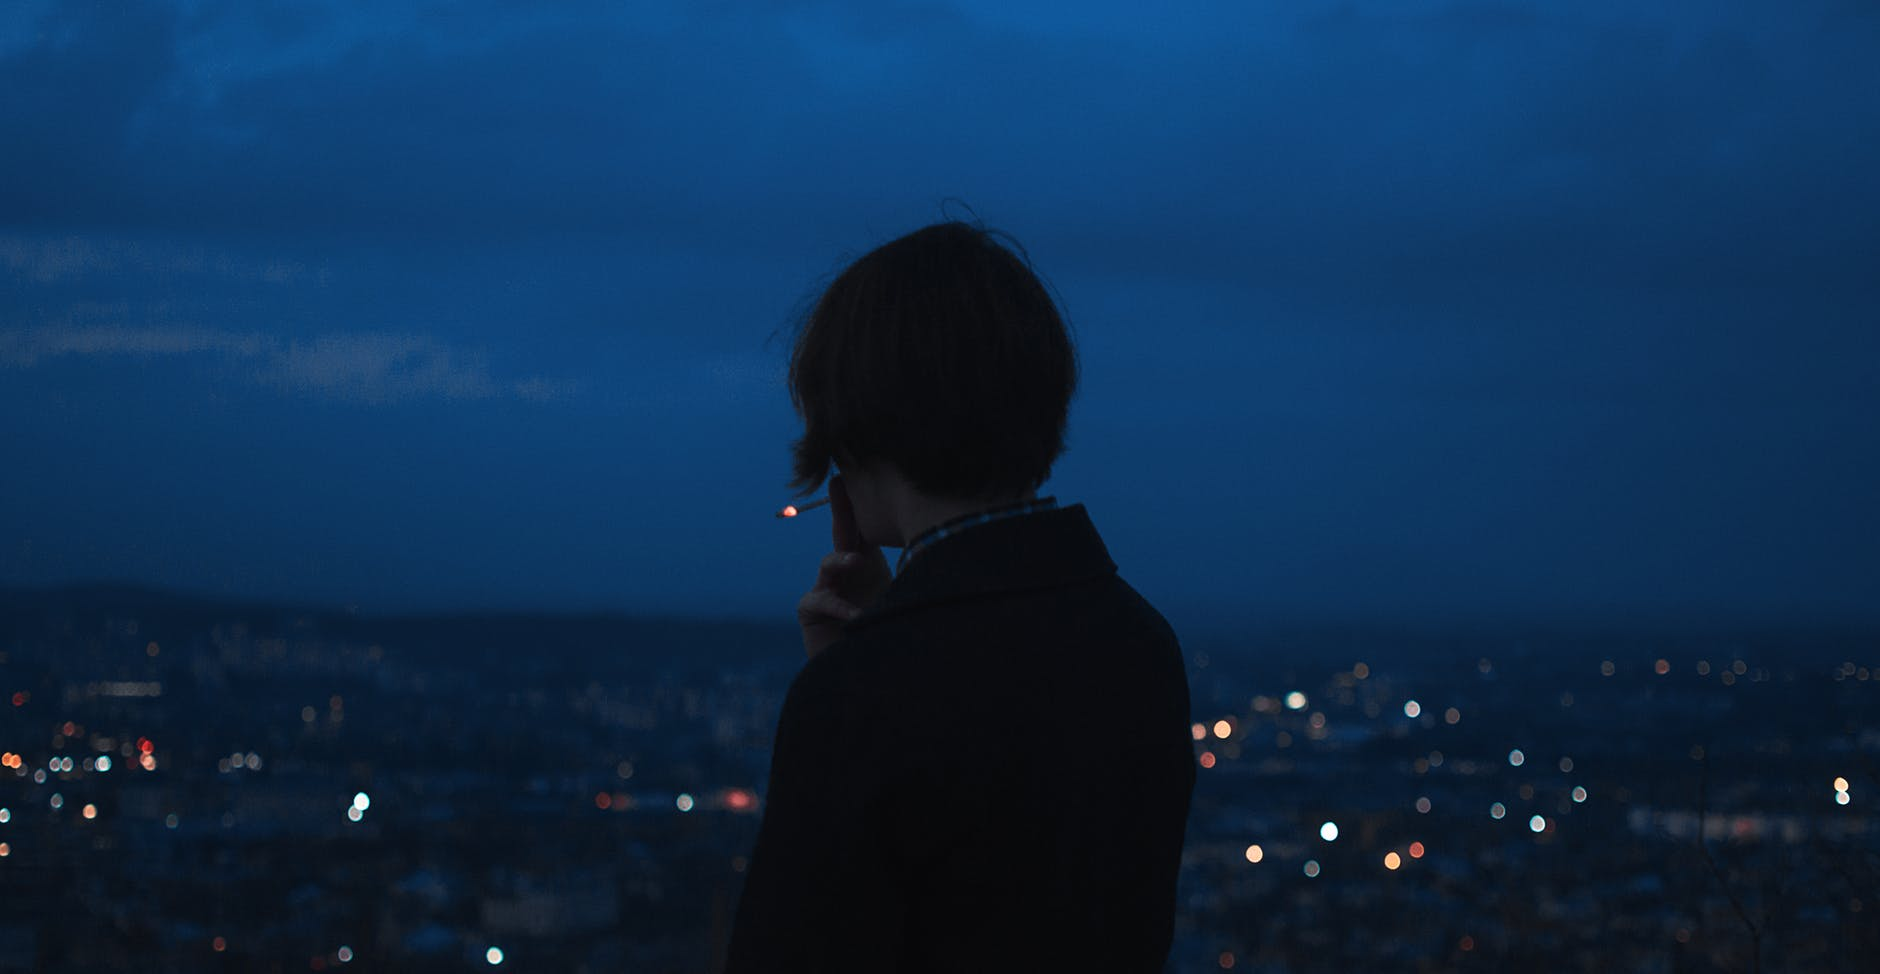 person smoking across city building during nighttime